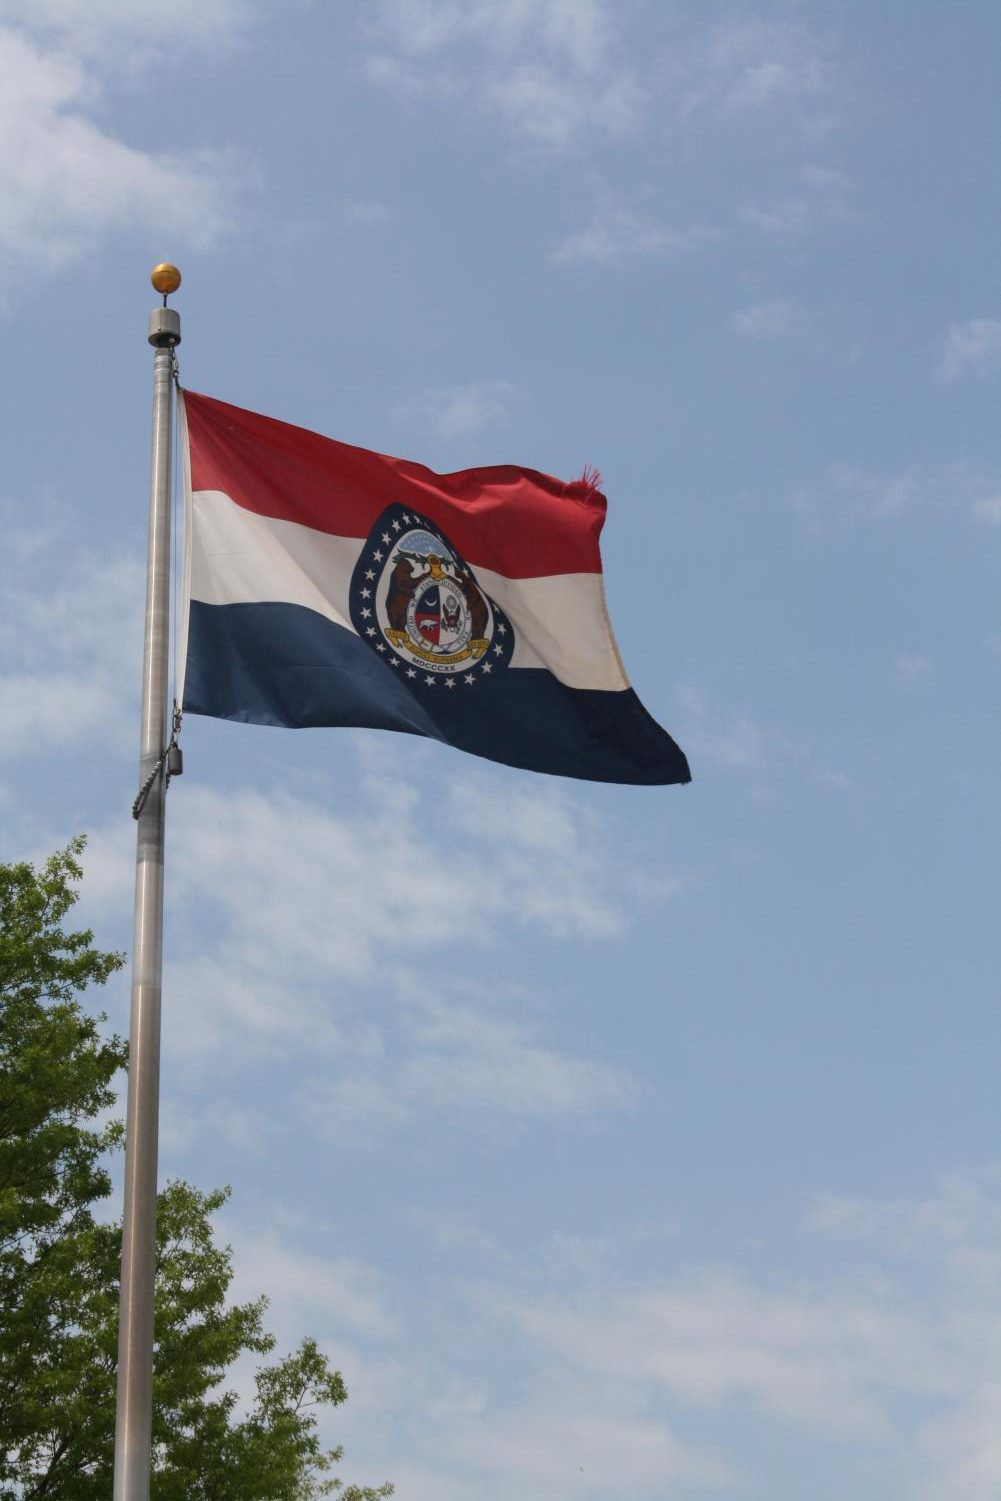 The Missouri flag stands tall outside of school.